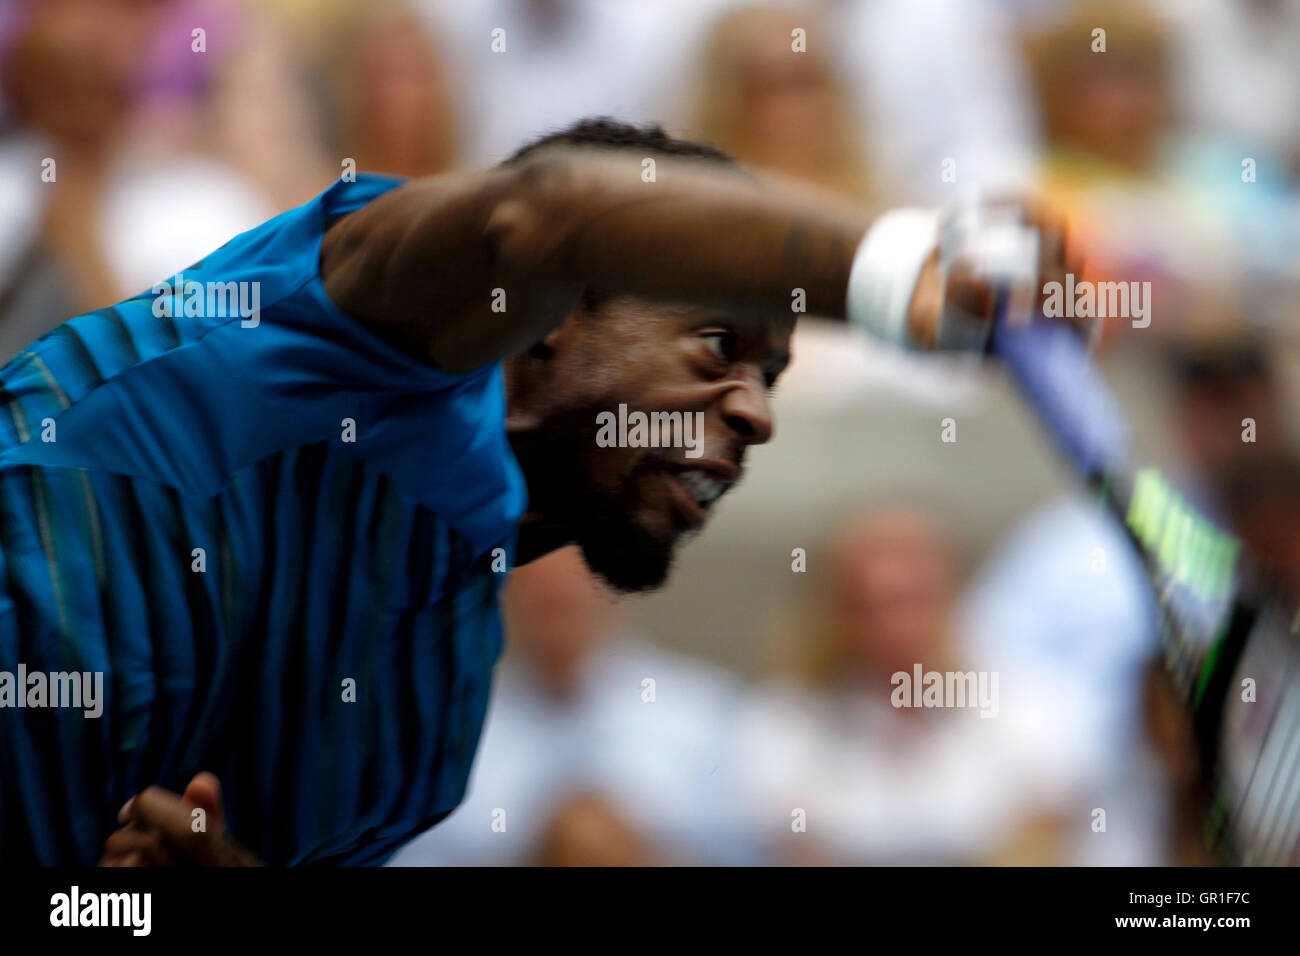 New York, USA. 6th September, 2016. Gael Monfils of France during his quarterfinal match against countryman Lucas - Stock Image